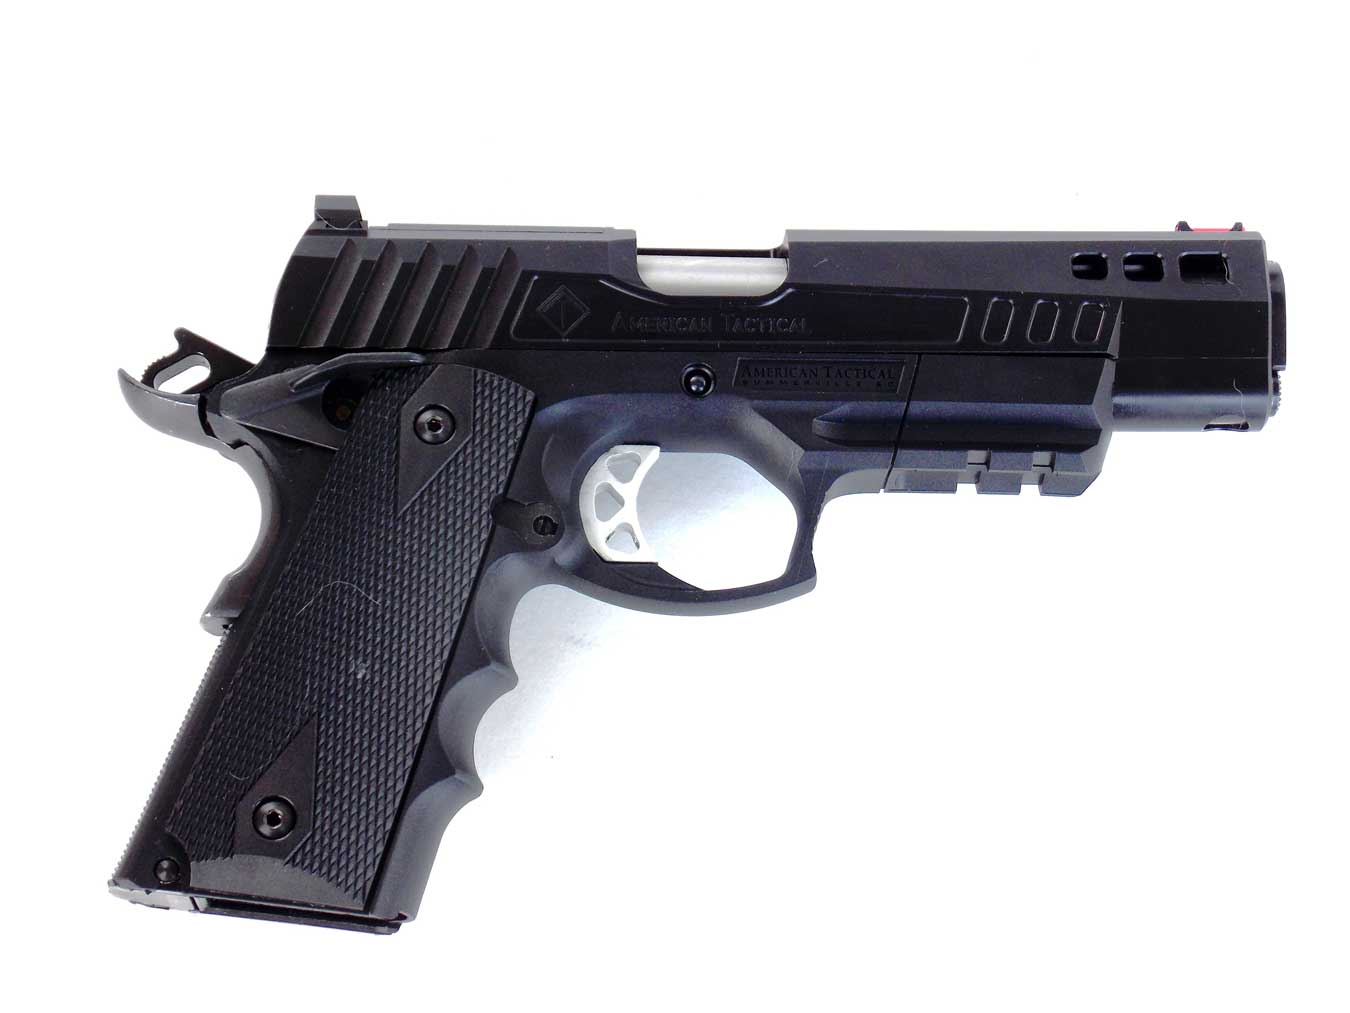 Range Report: FXH .45 — The Hybrid 1911 From ATI